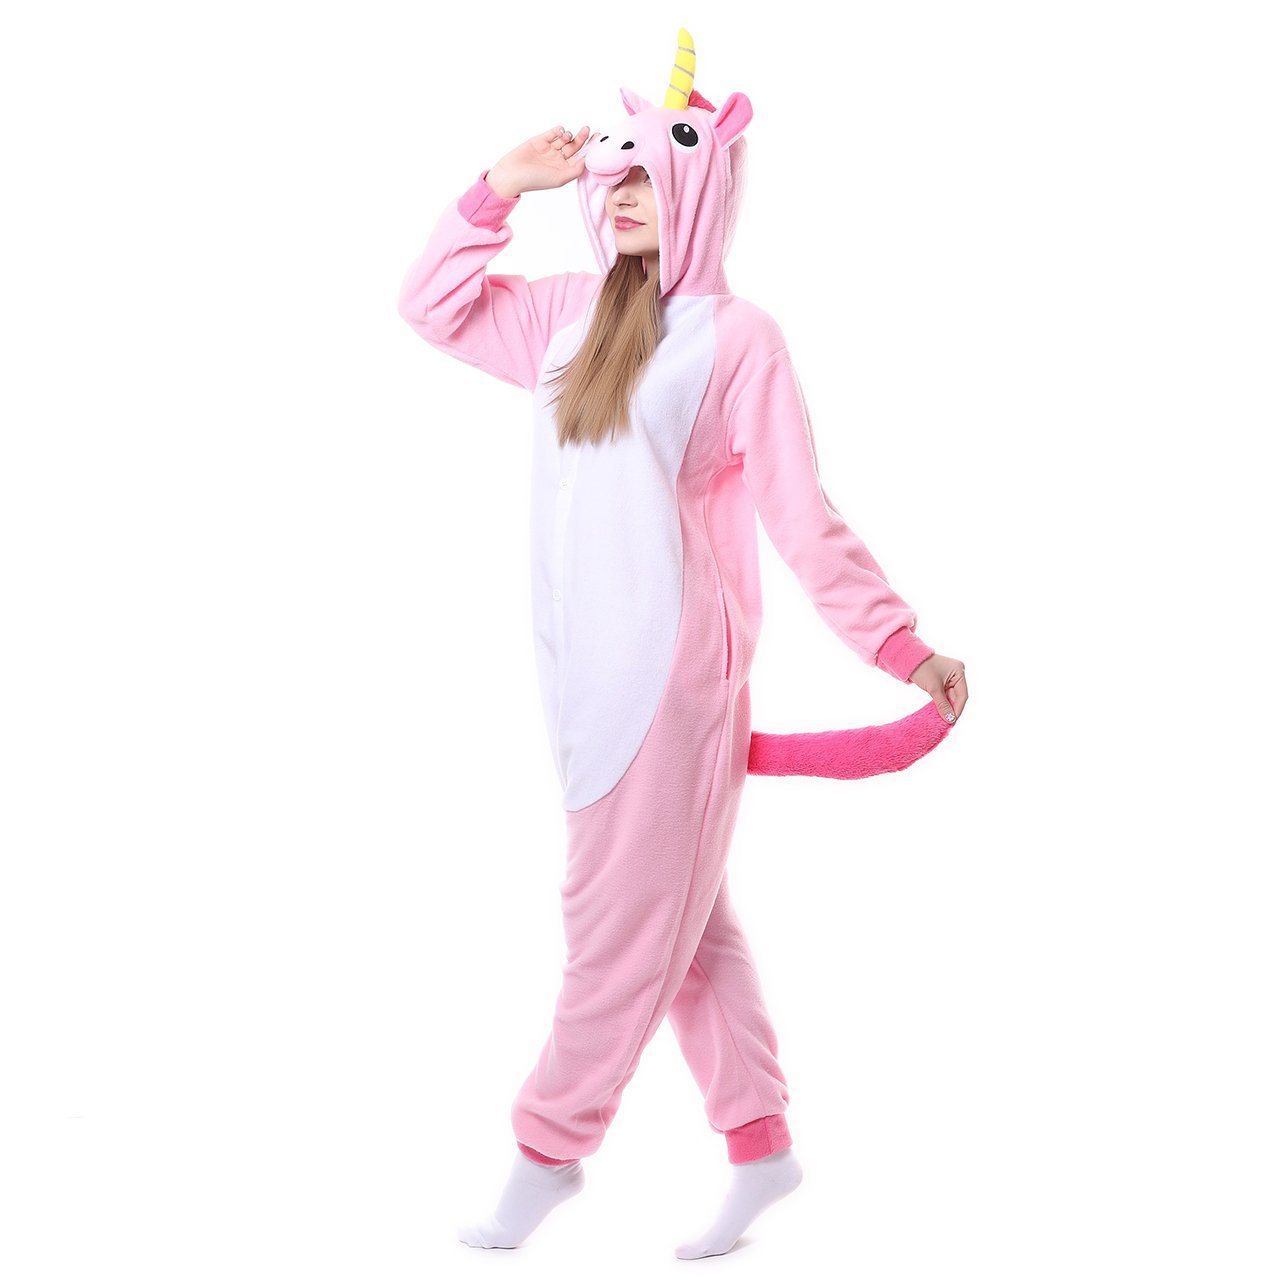 zeayea Adult Animal Kigurumi Unicorn Cosplay Costume Pajamas ZY201704277